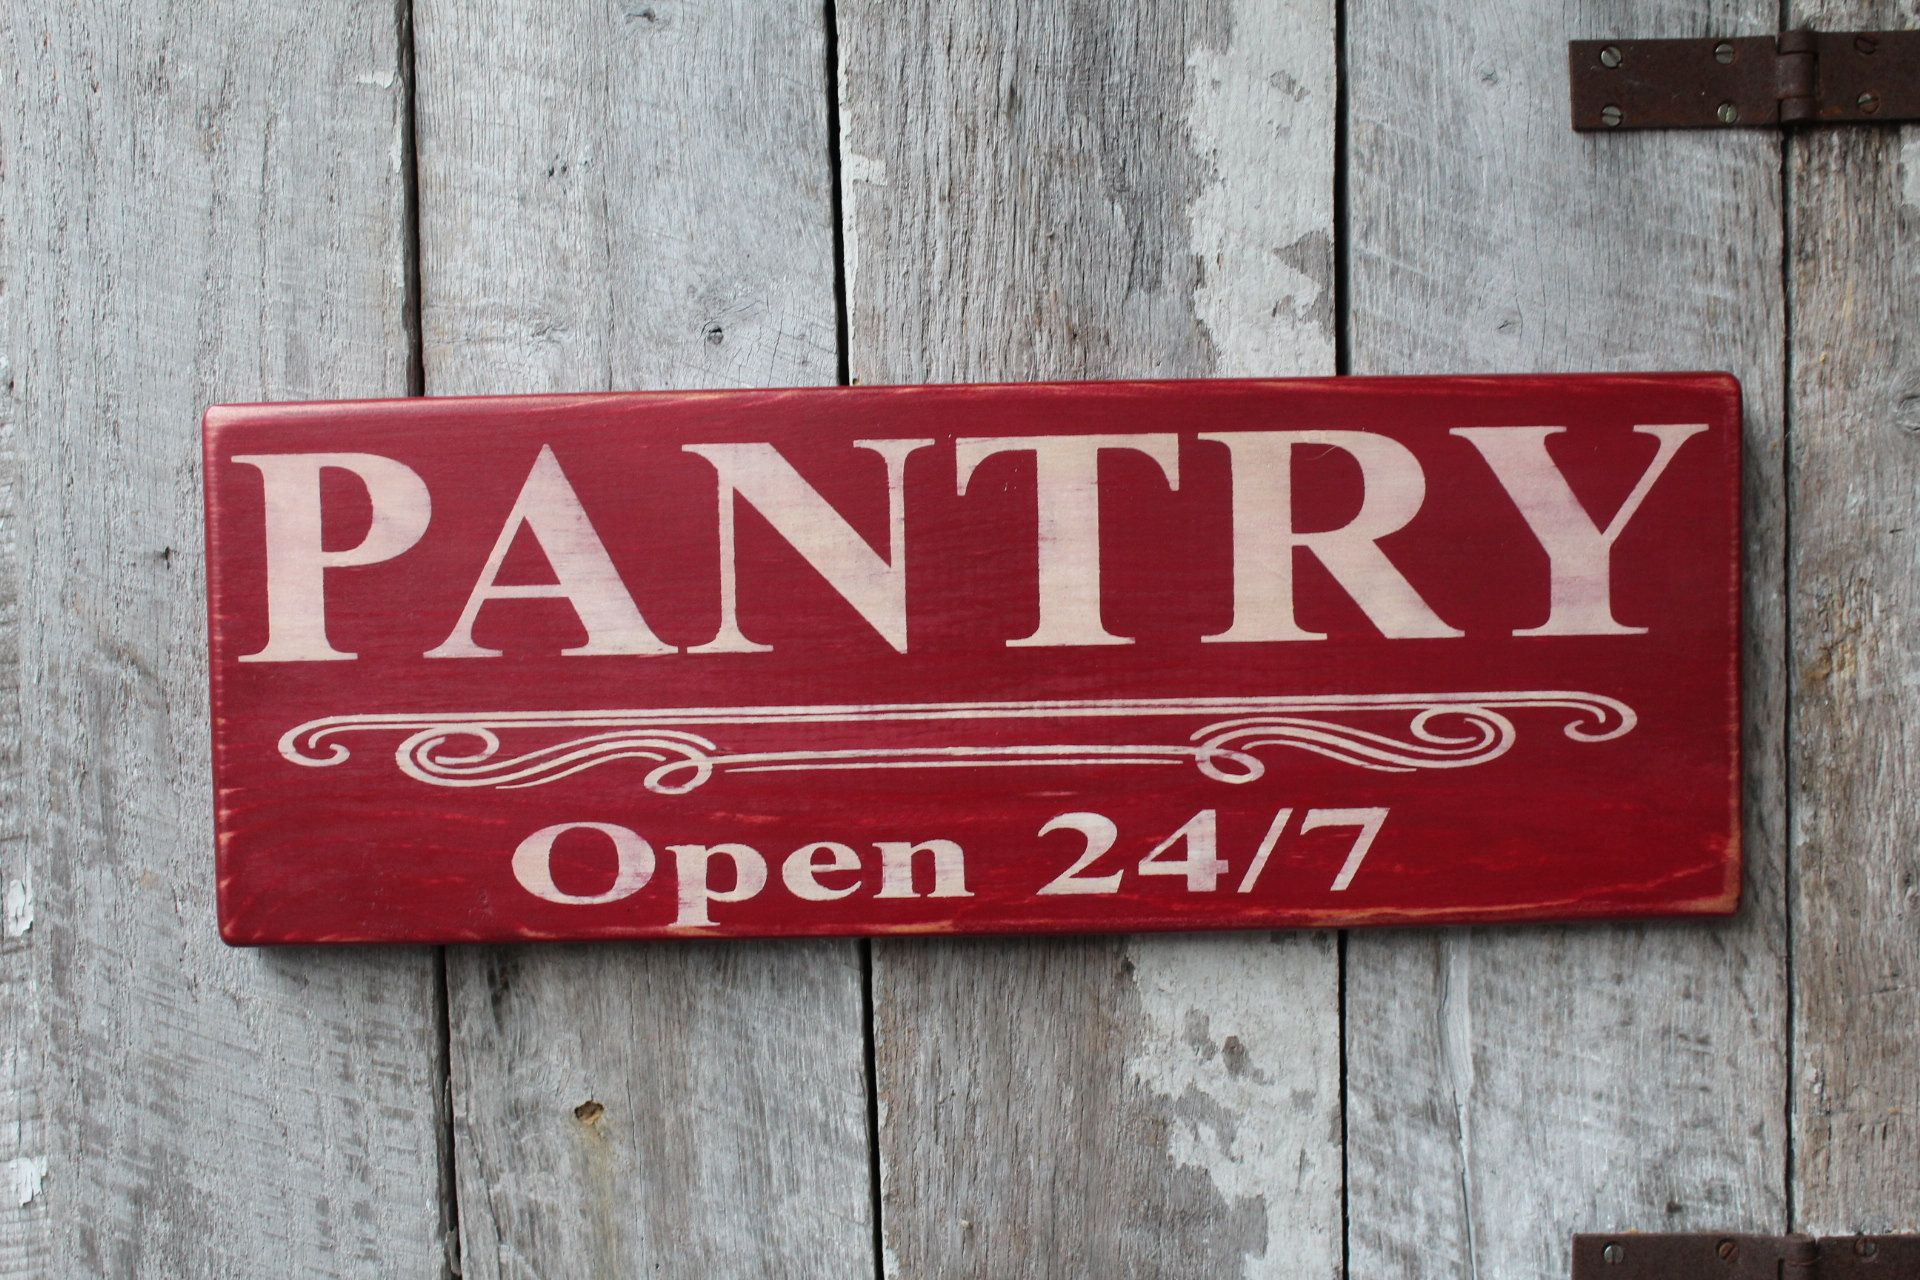 Pantry Open 24 7 Wood Sign Kitchen Wall Decor Funny Kitchen Etsy In 2020 Rustic Kitchen Wall Decor Kitchen Signs Kitchen Wall Decor Farmhouse